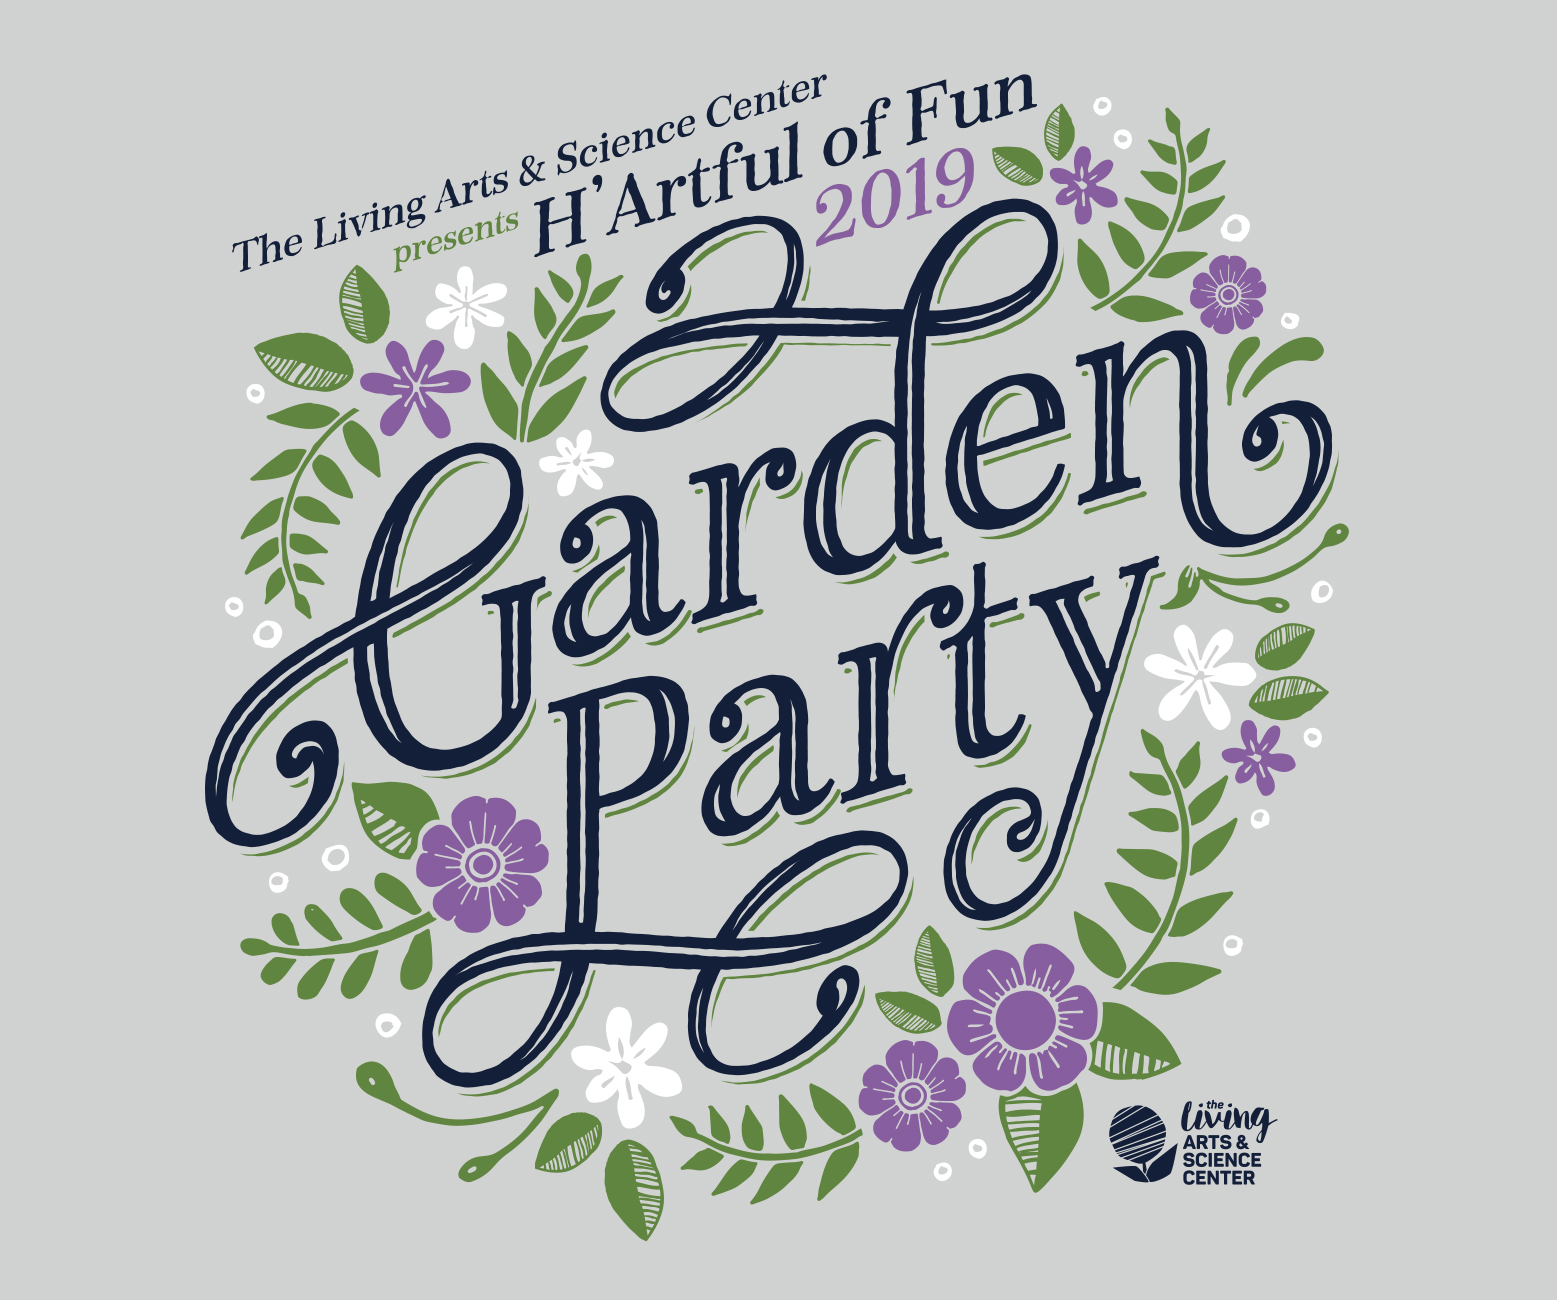 H'Artful of Fun: A Garden Party